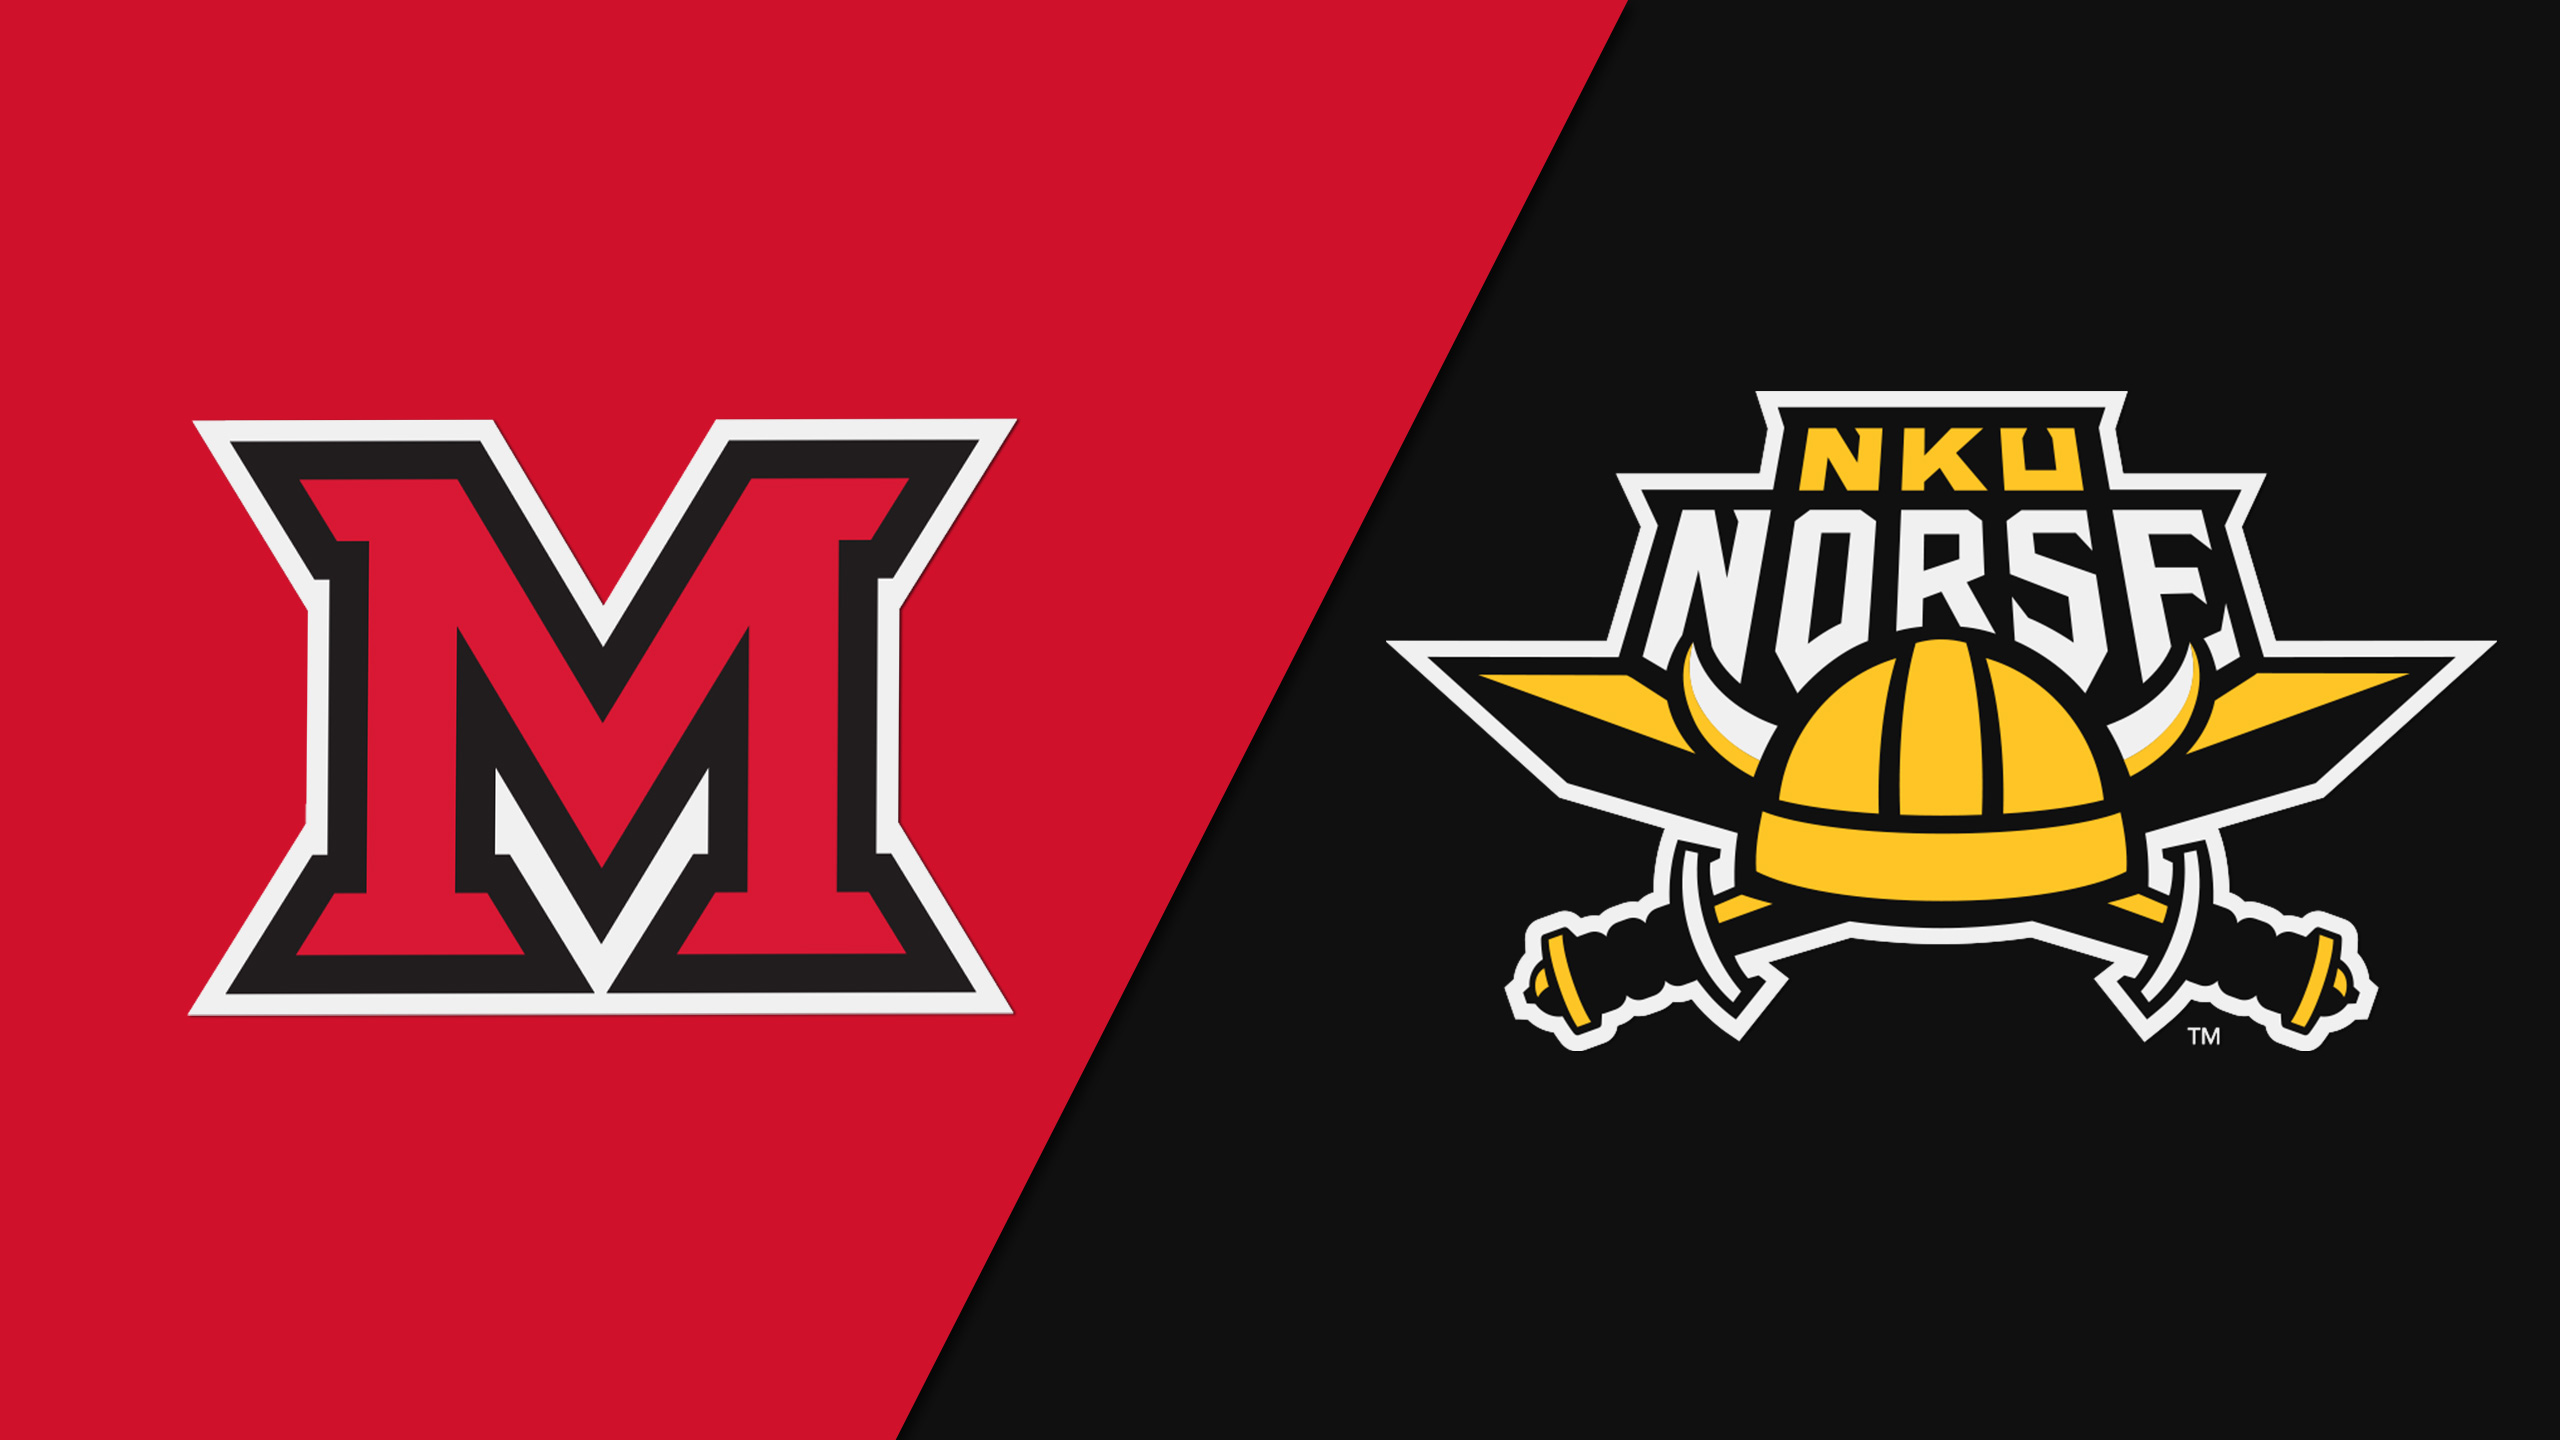 Miami (OH) vs. Northern Kentucky (M Basketball)